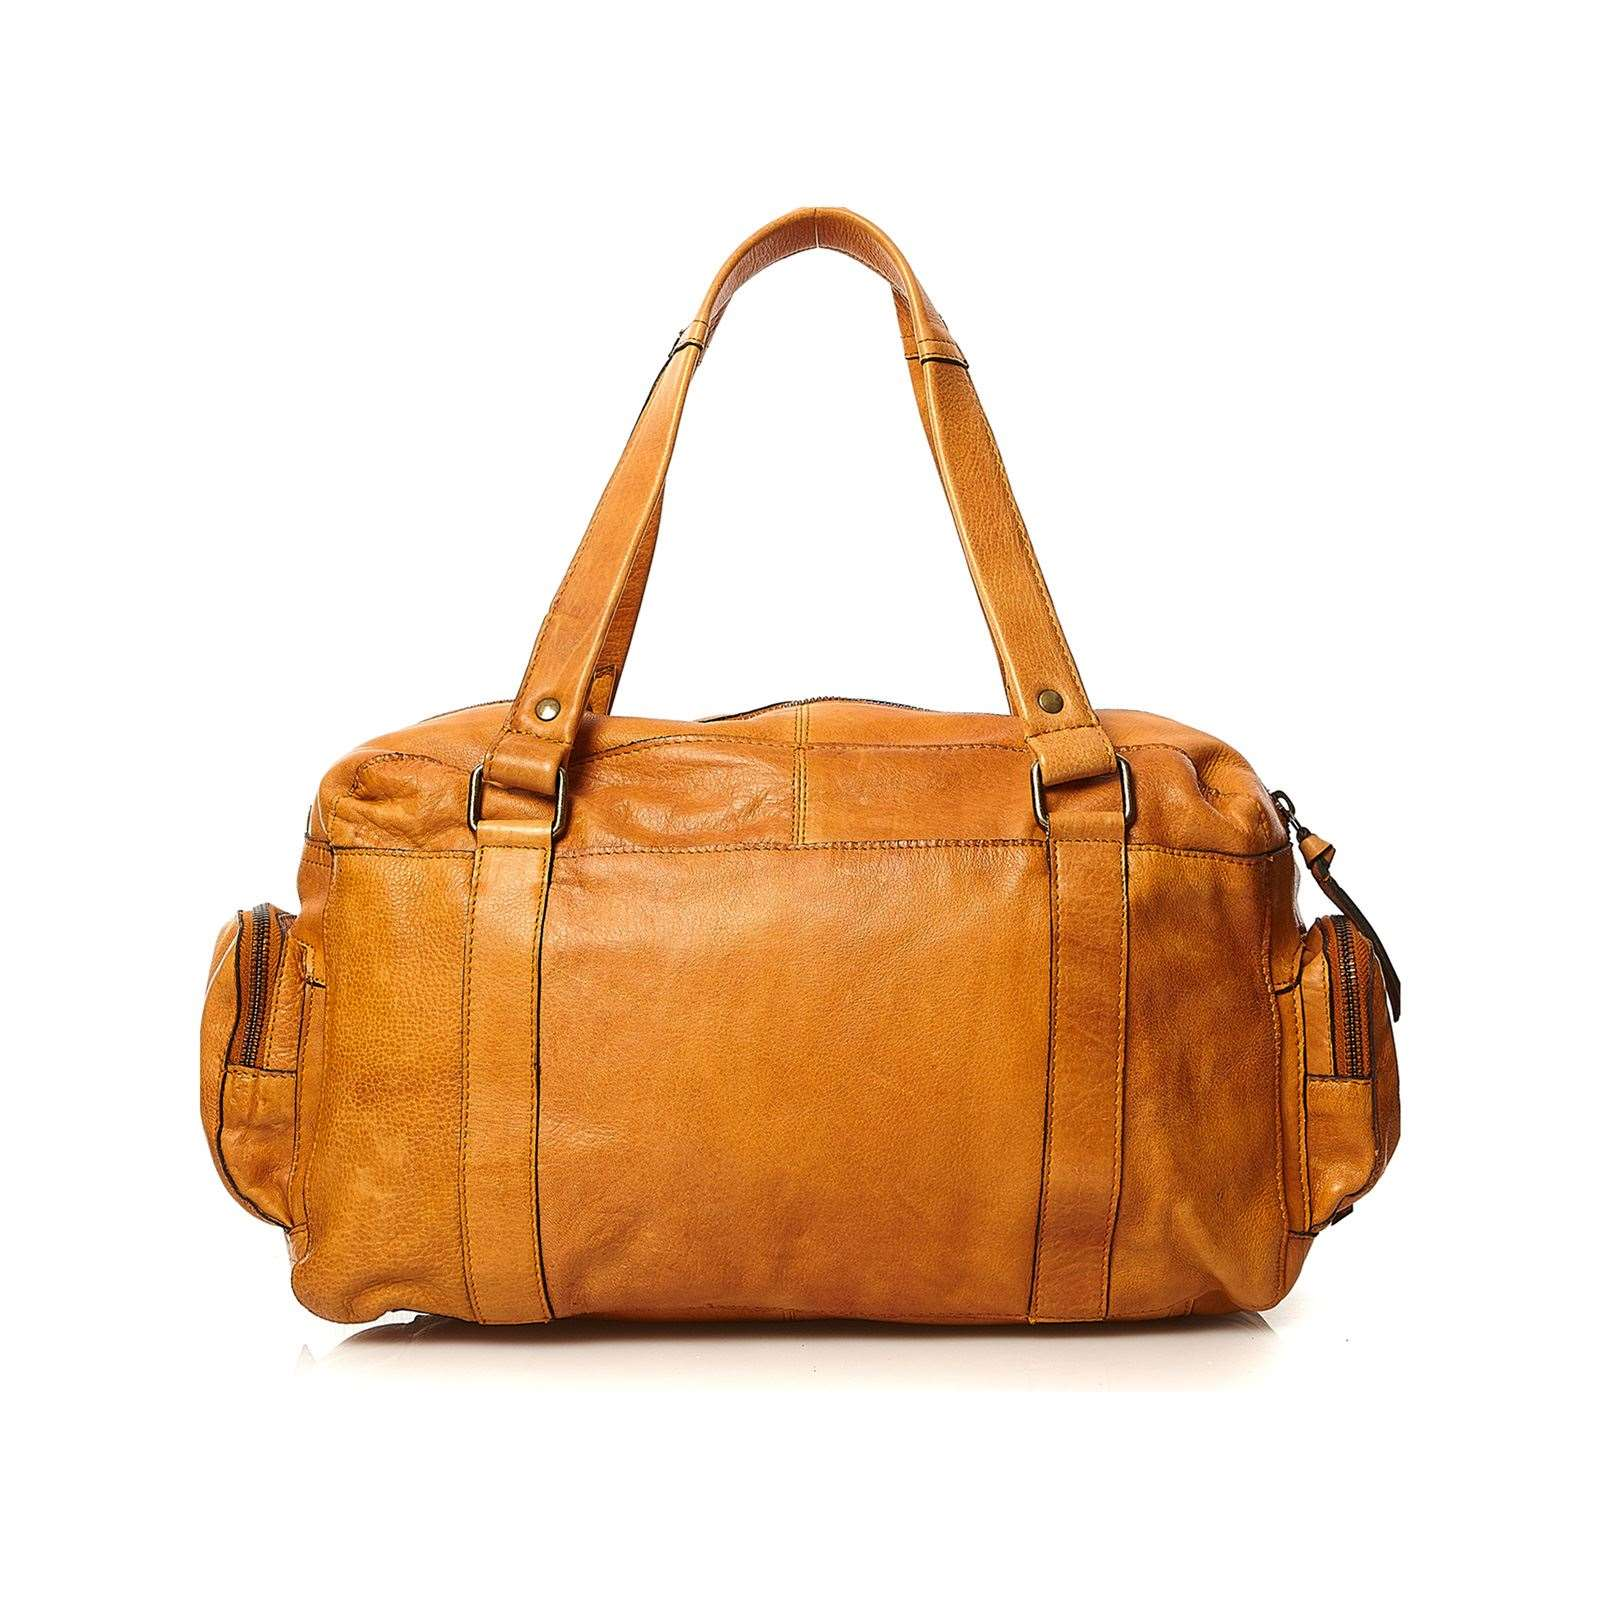 Pieces Totally - Sac à main en cuir - cognac   BrandAlley 971711ee47b